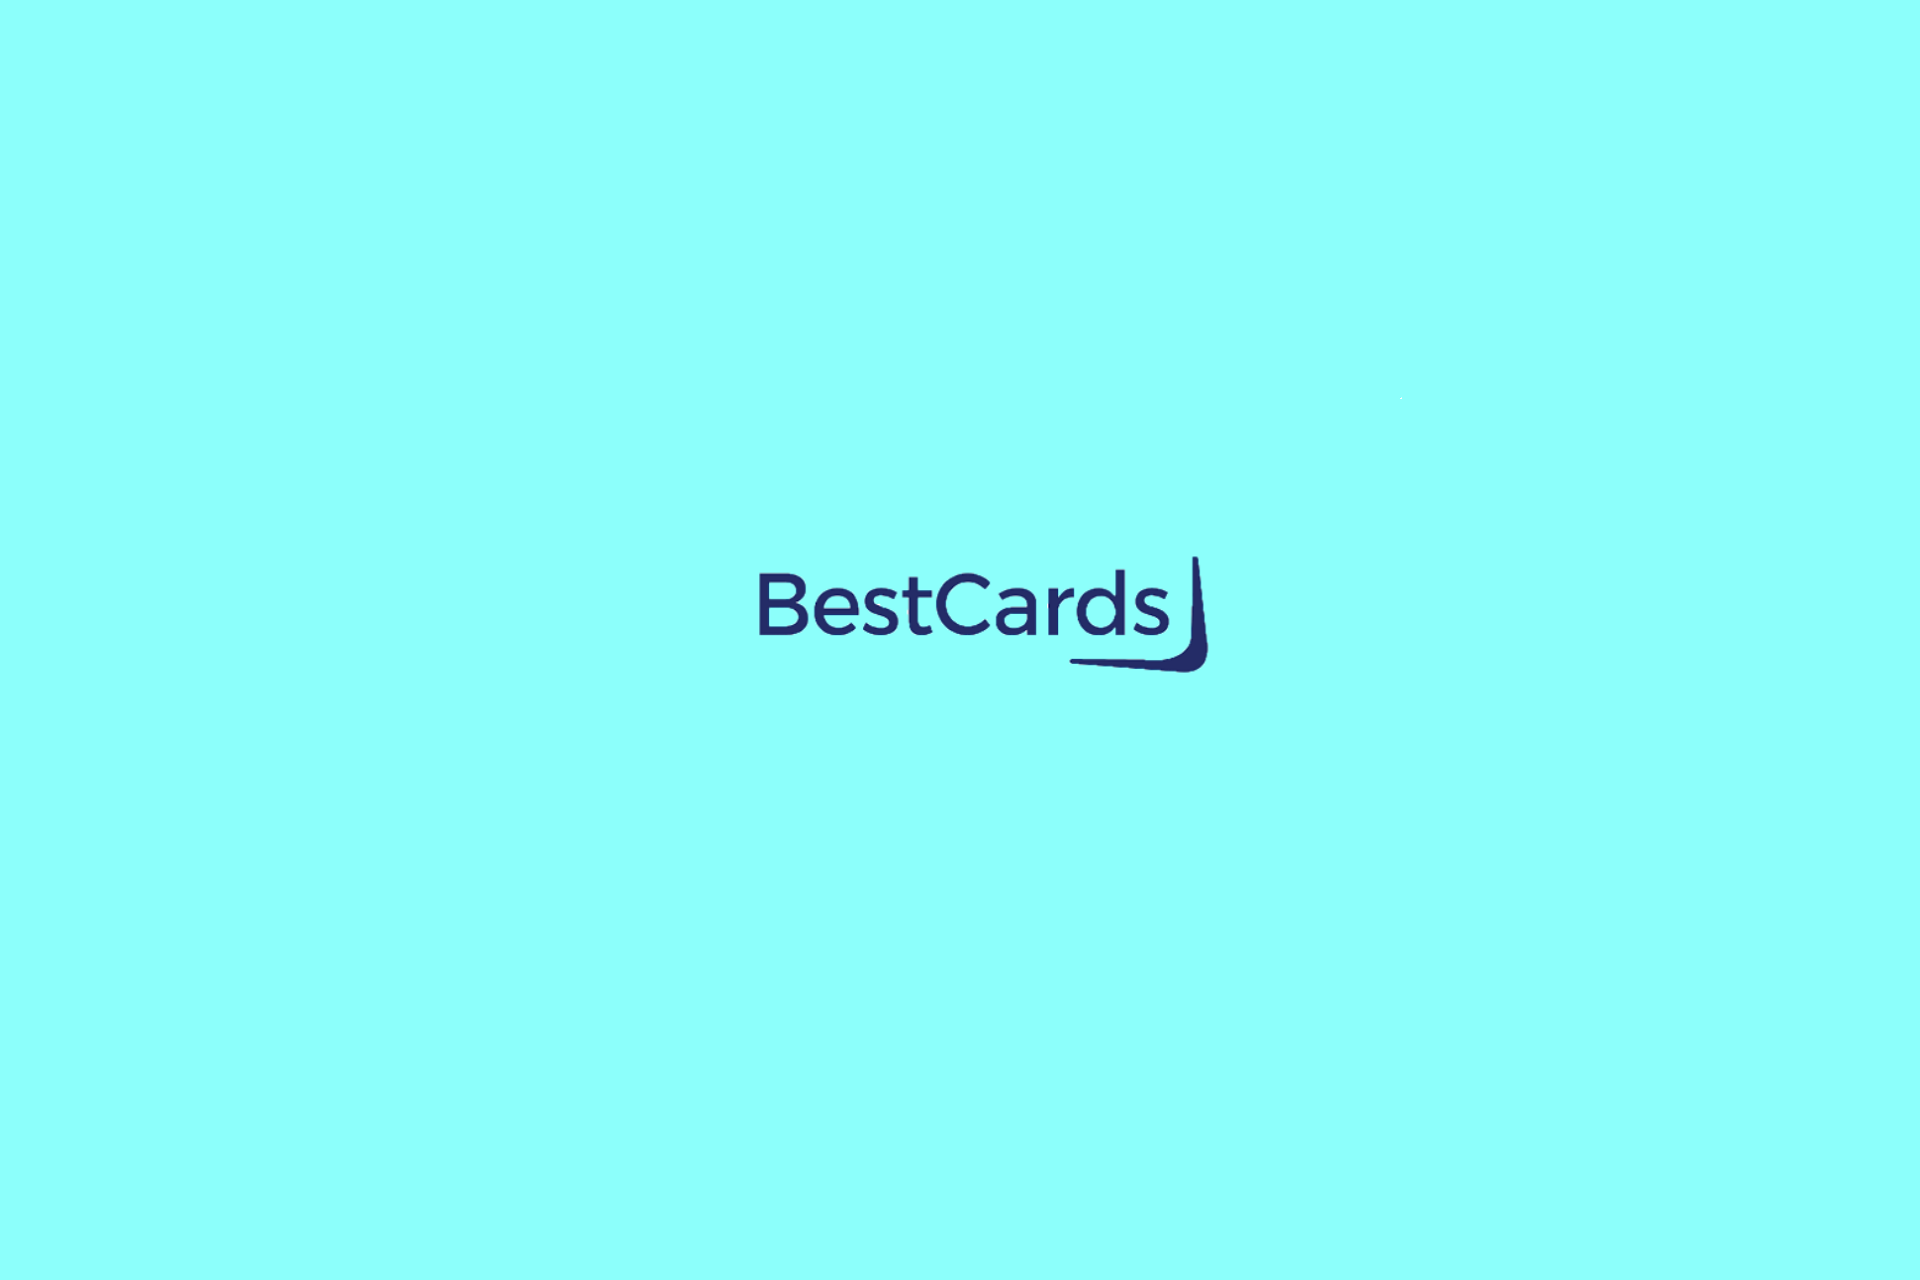 bestcards light blue logo